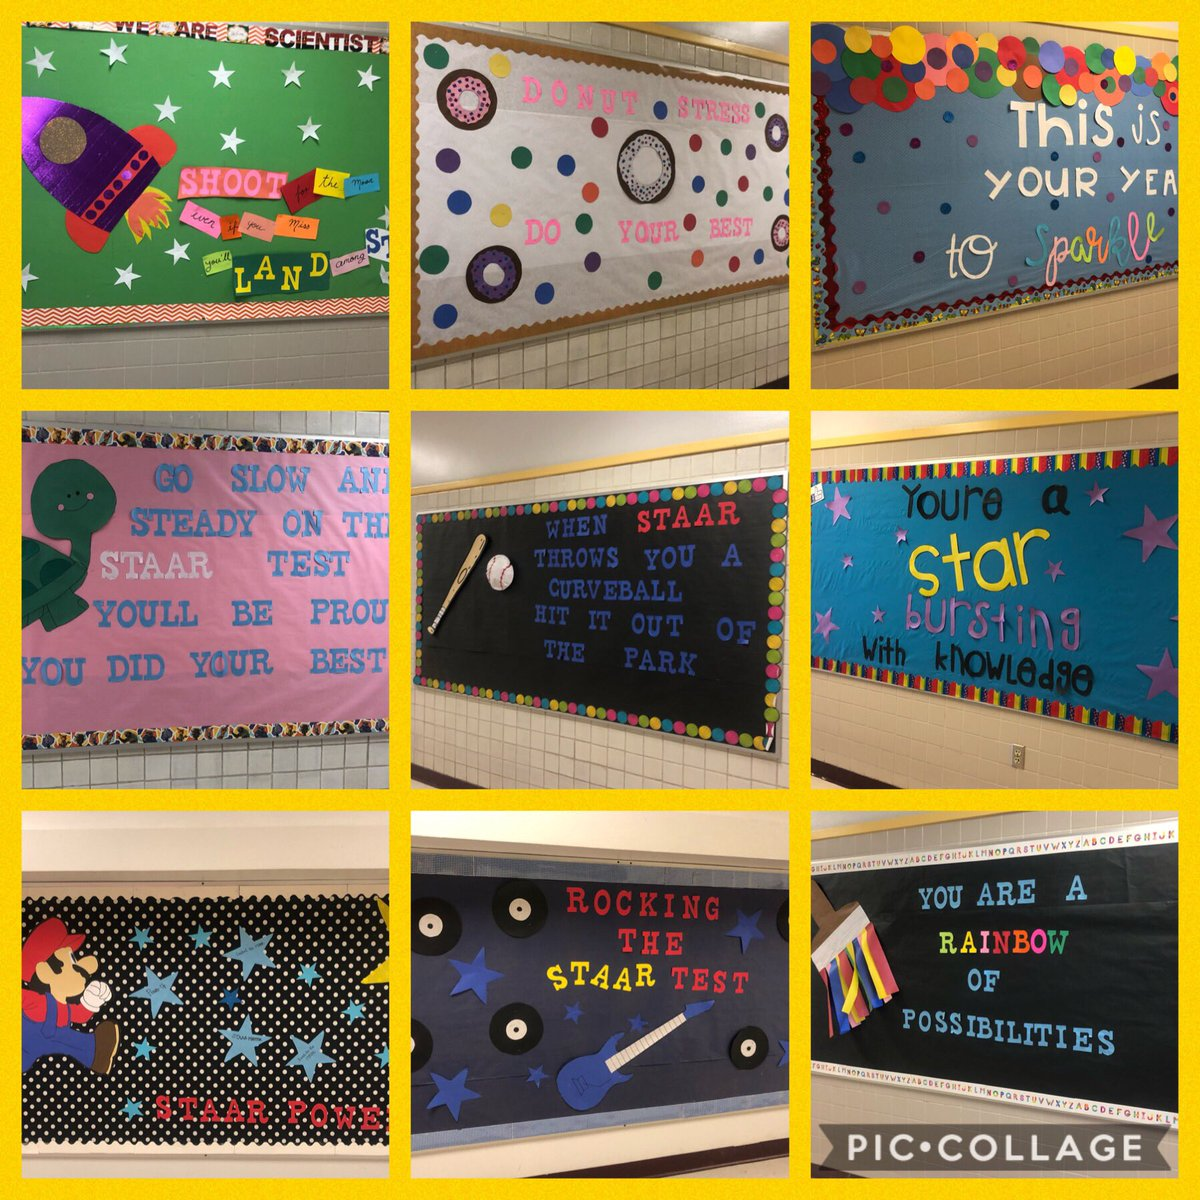 Daisy Garcia On Twitter Motivational Bulletin Boards Are On Point At Sun Country Rsendek Hes Teamsisd